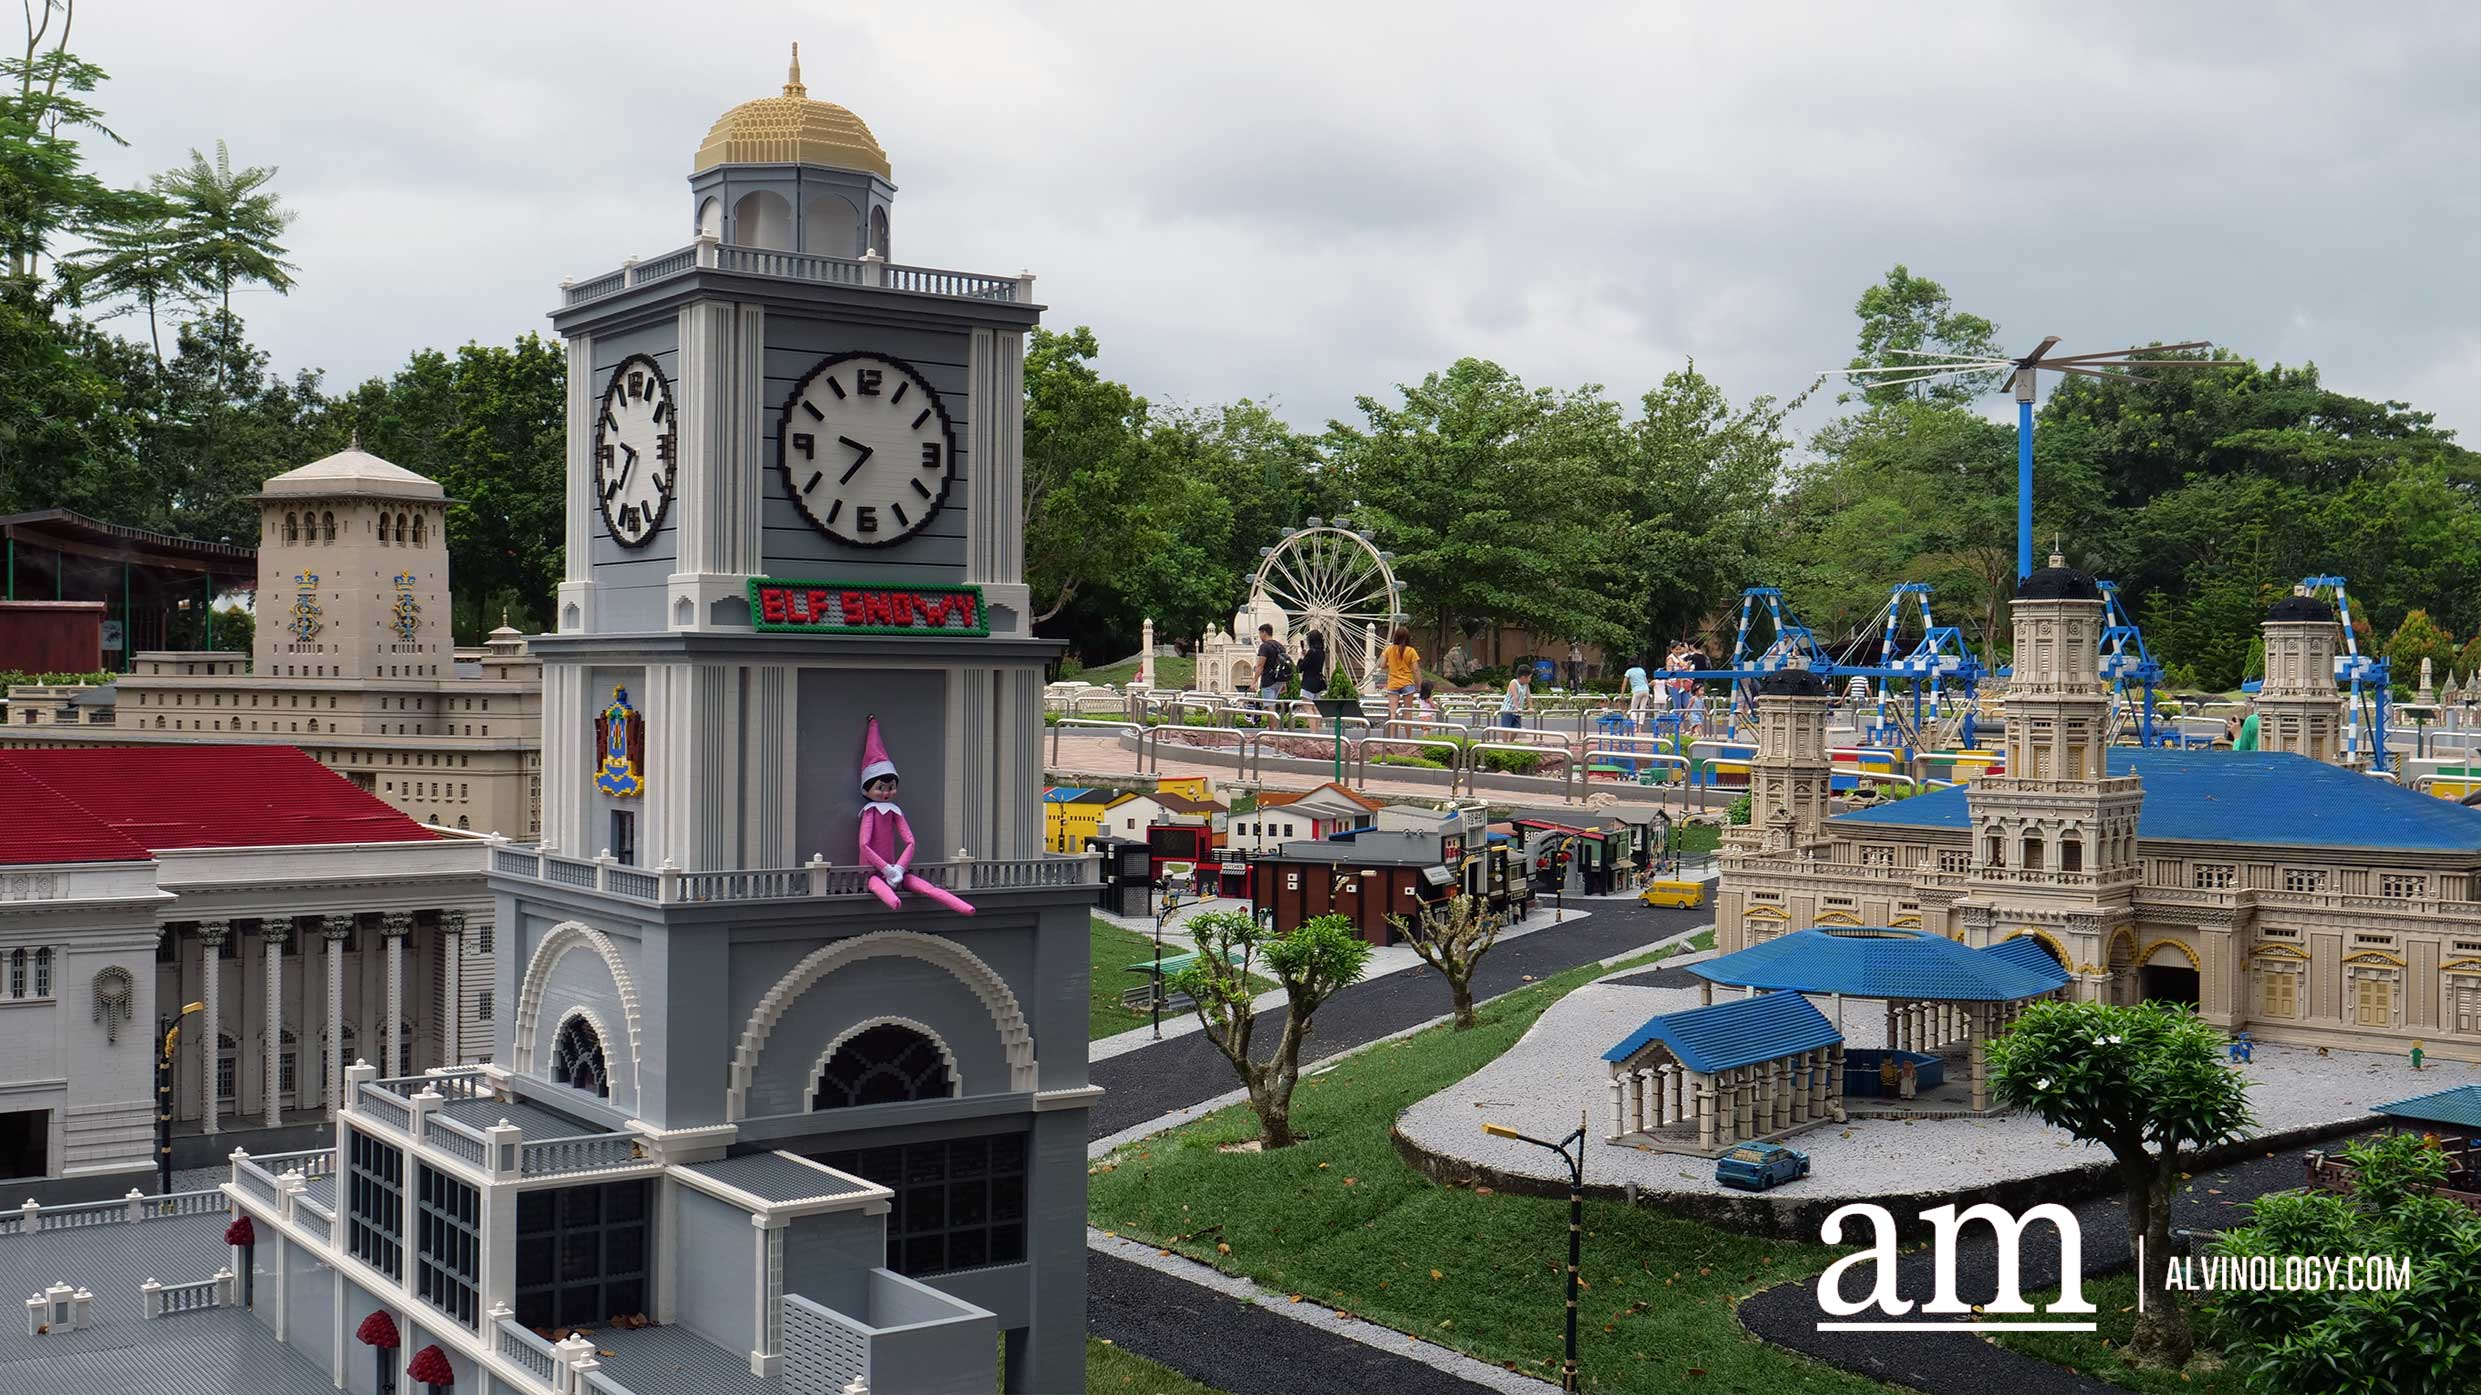 LEGOLAND Malaysia Resort ready to reopen on 25 June with offering promos and a safety-conscious holiday experience - Alvinology